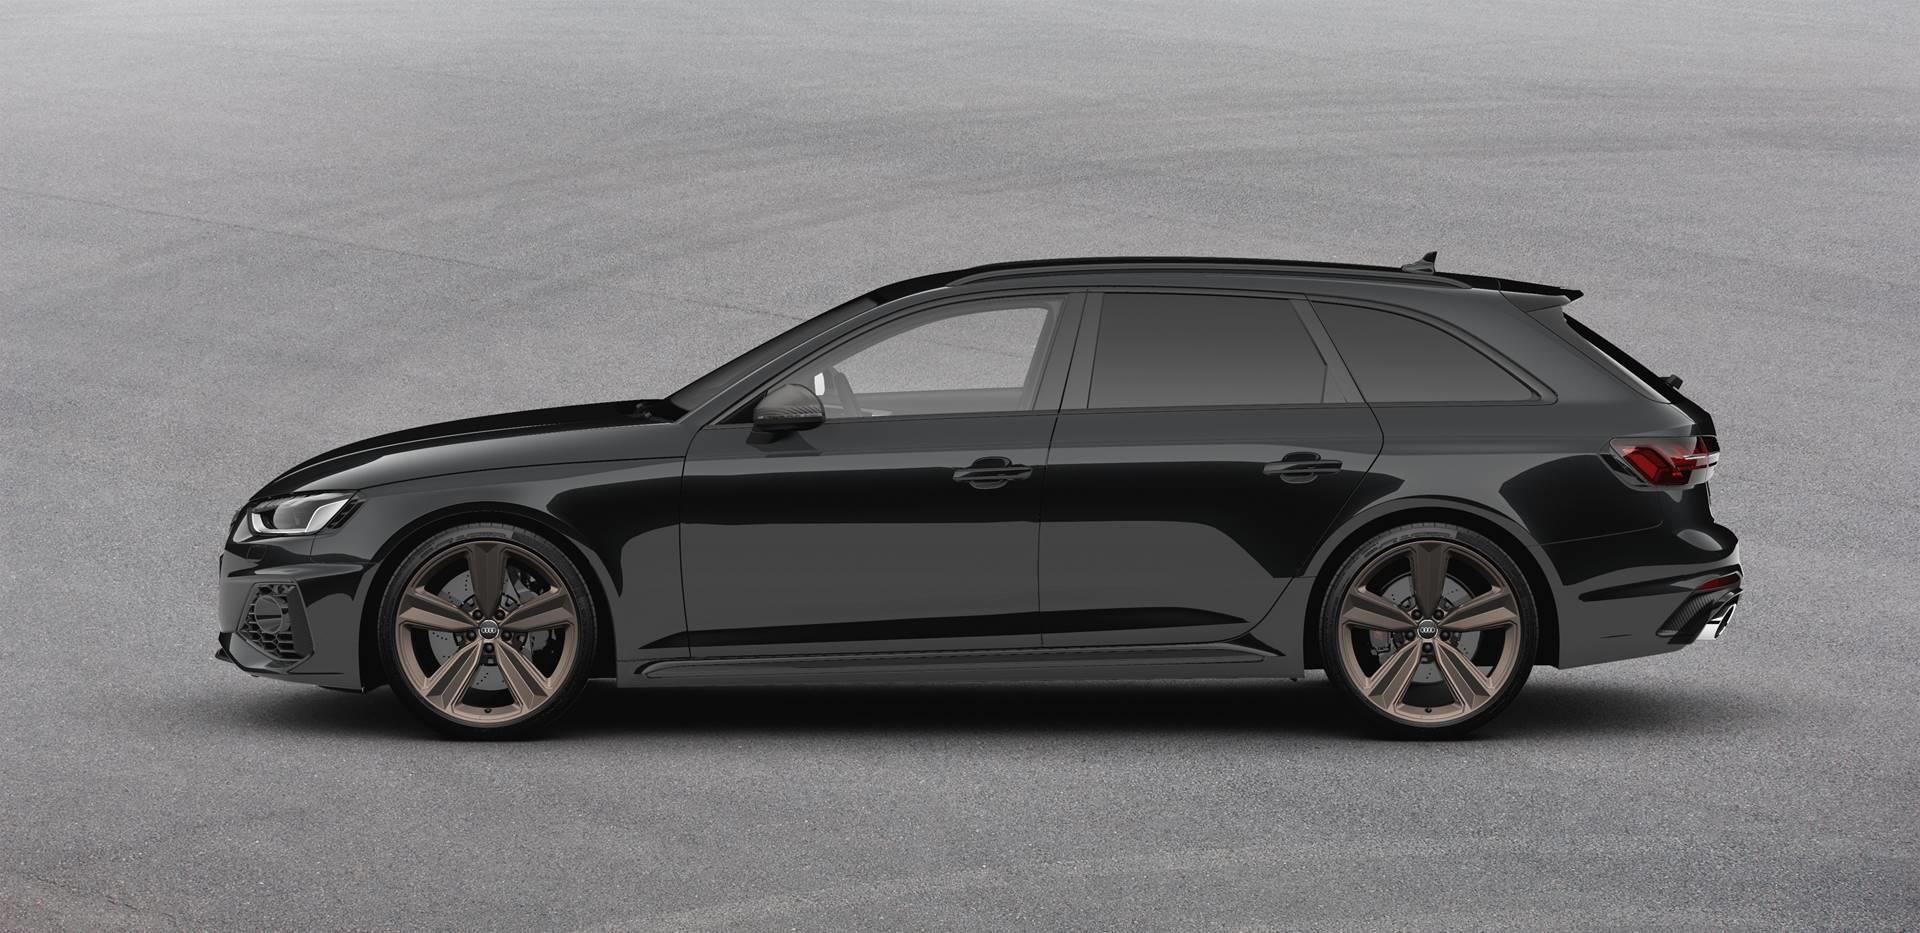 2020 Audi Rs 4 Avant Bronze Edition News And Information